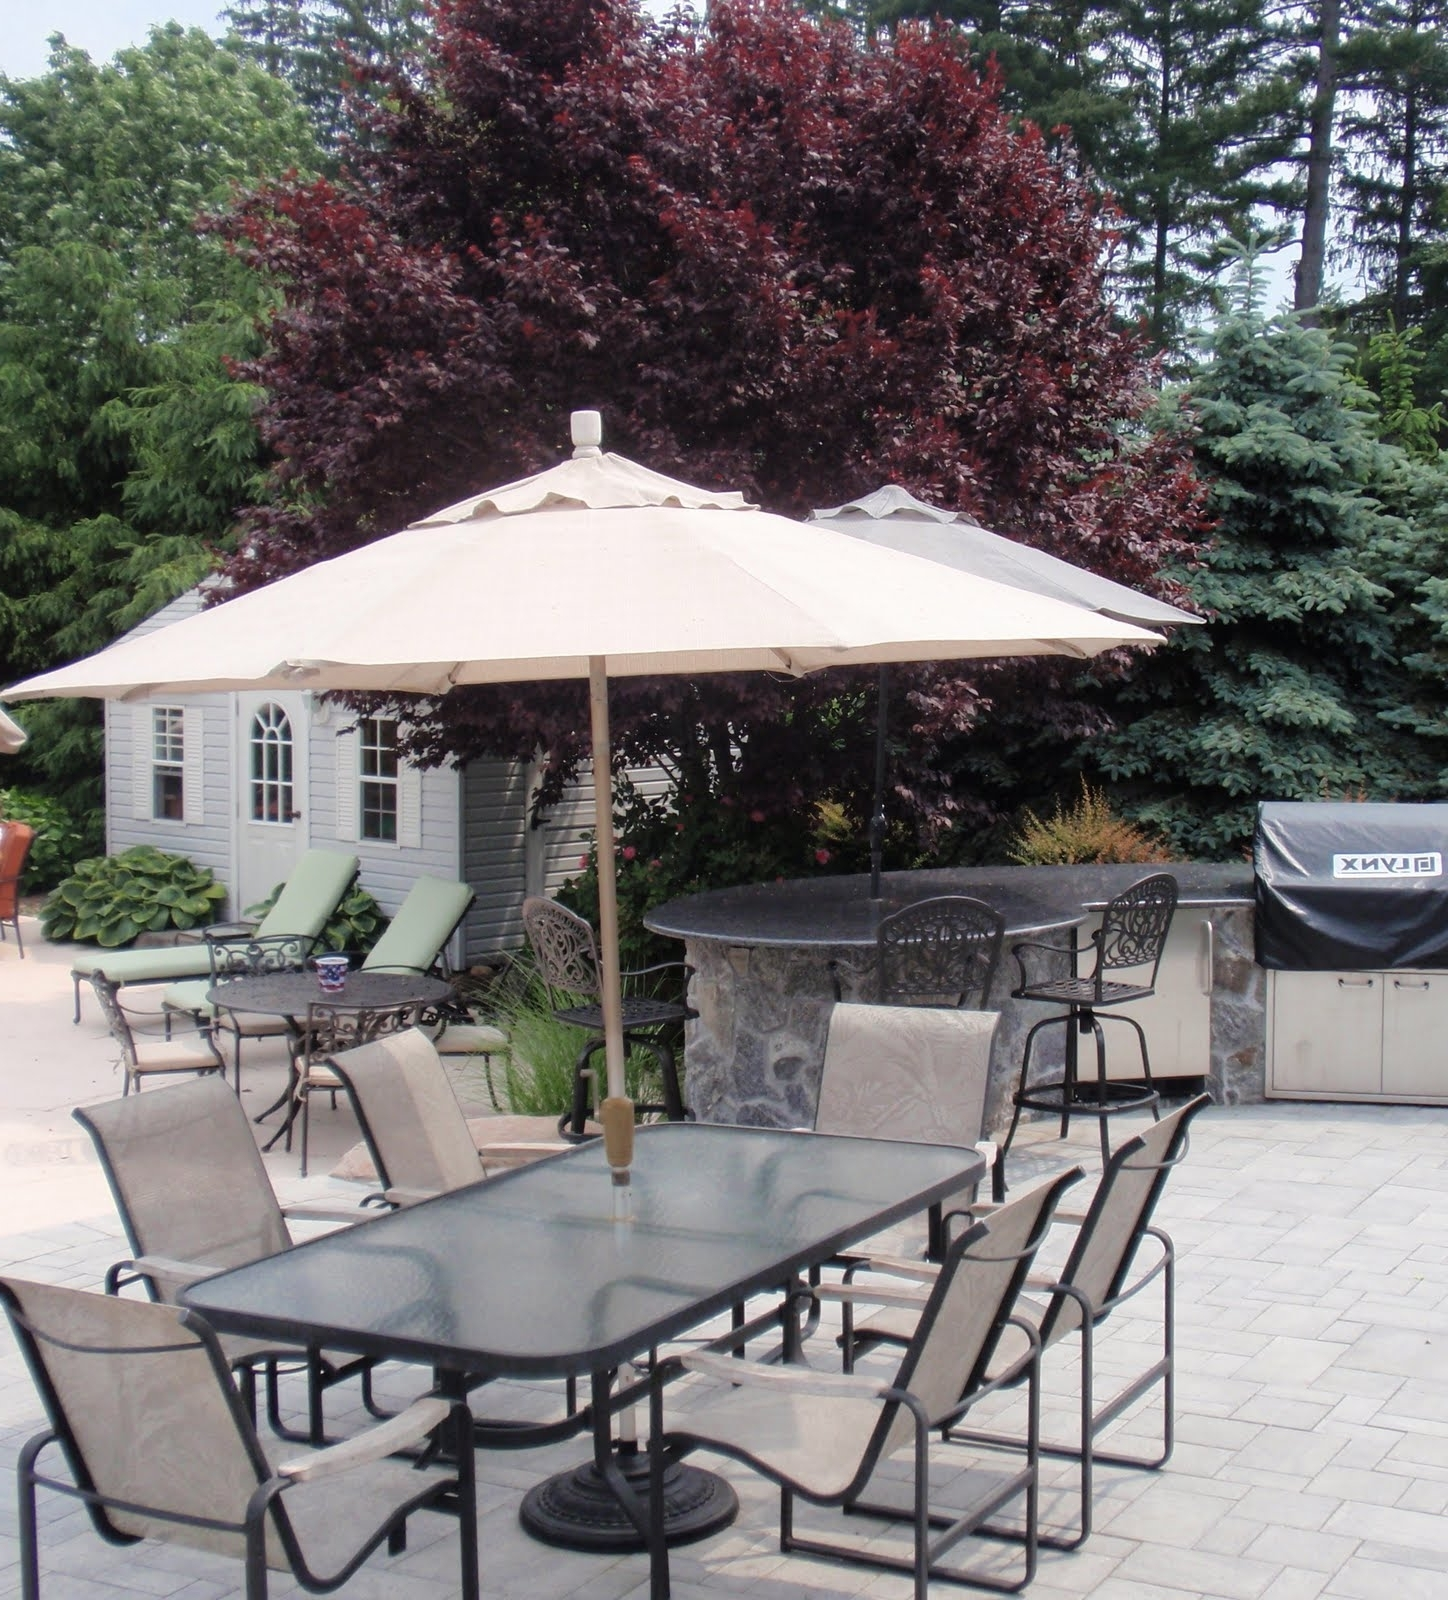 Newest Fabulous Patio Table Umbrellas Exterior Red Target Patio Umbrellas Pertaining To Patio Umbrellas With Table (Gallery 4 of 20)